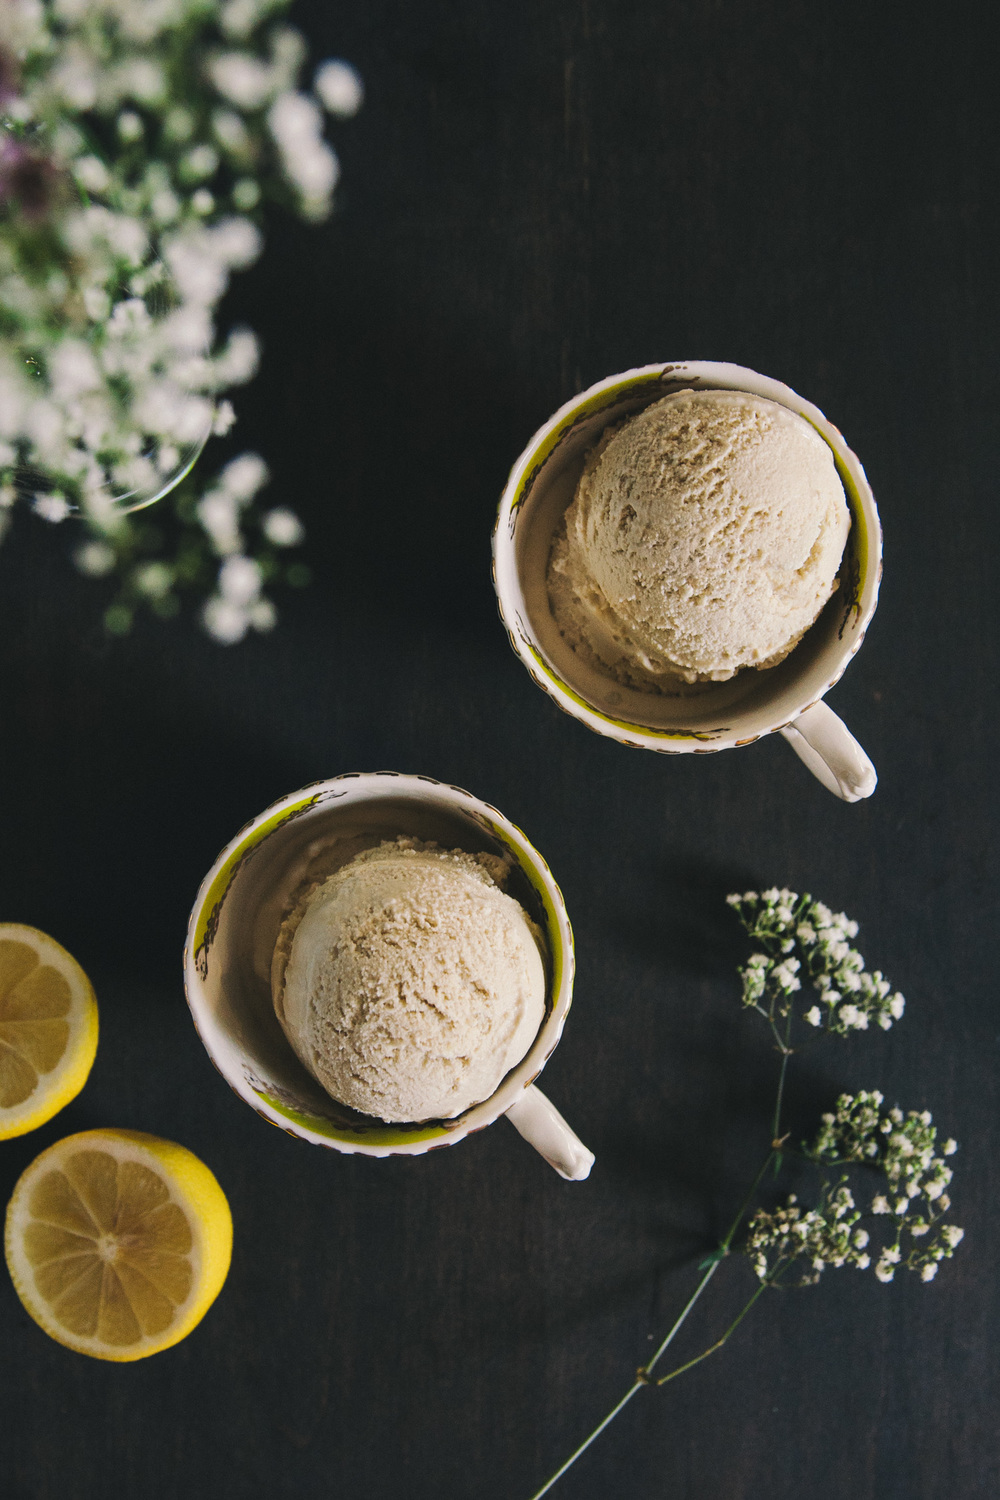 Earl Grey Ice Cream with a Hint of Lemon | O&O Eats